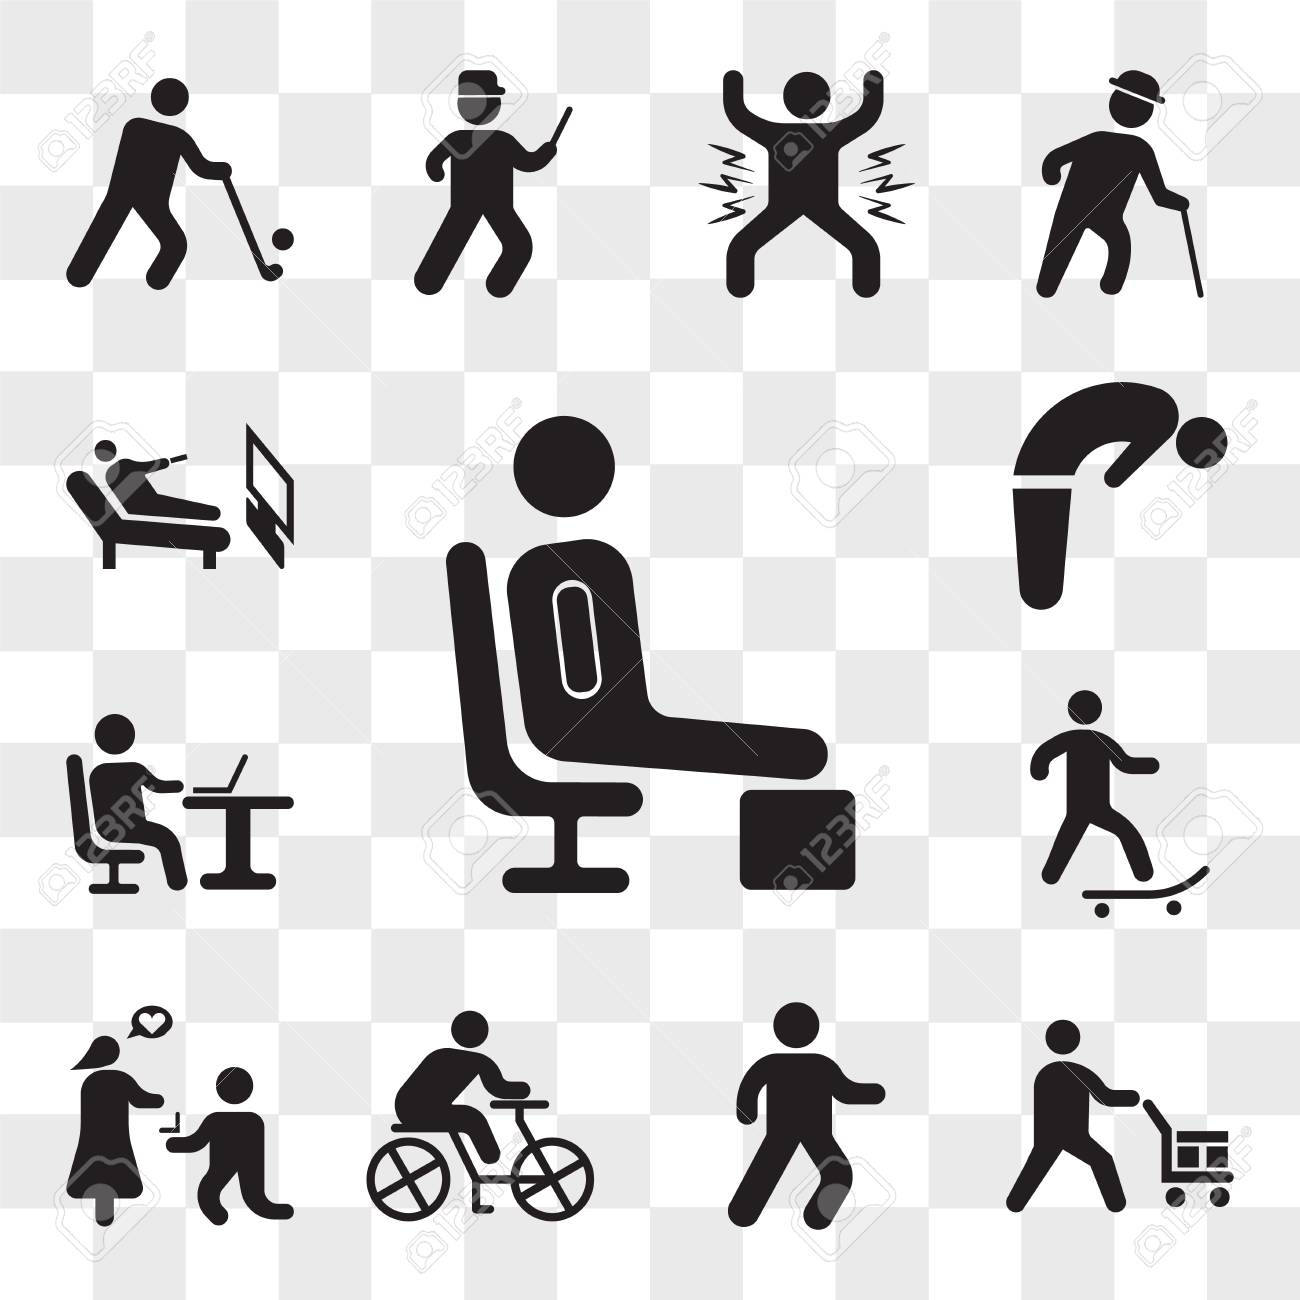 Set Of 13 transparent icons such as Resting, Worker loading boxes, Man walking, Cyclist, Marry me, Skater, Working with laptop, Backbend, web ui editable icon pack, transparency set - 111893417